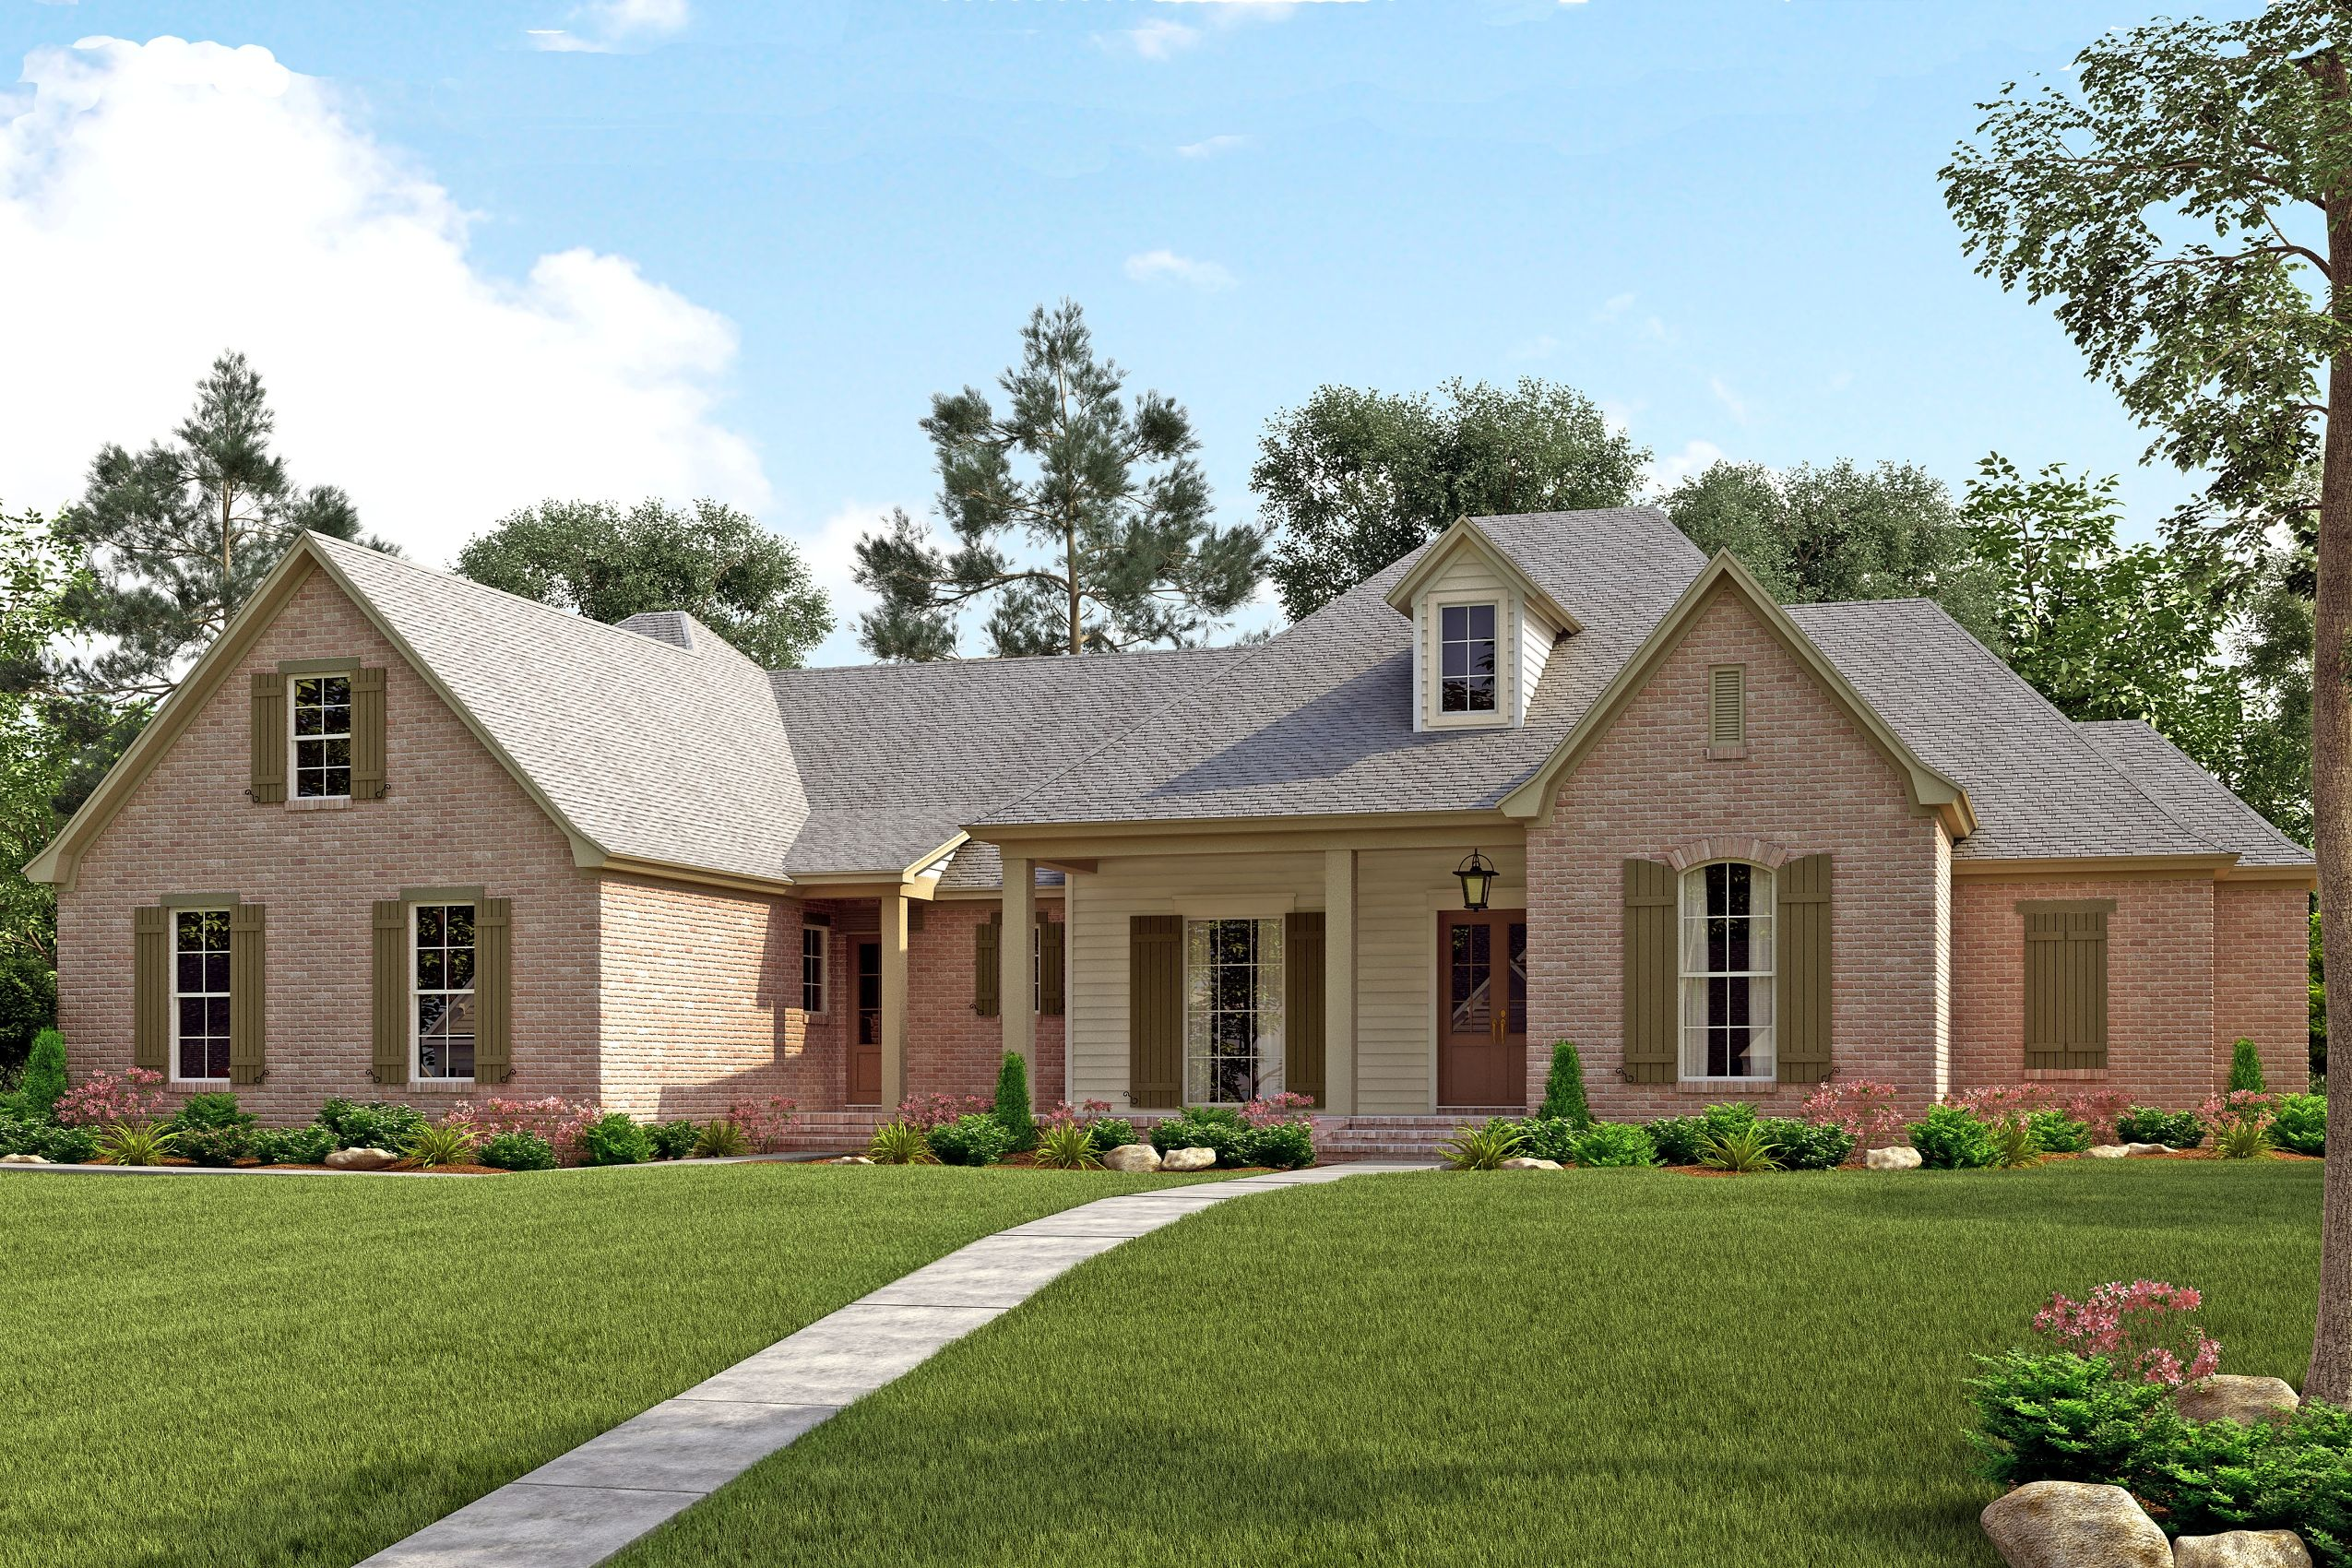 French House Plan 142 1139 4 Bedrm 3195 Sq Ft Home